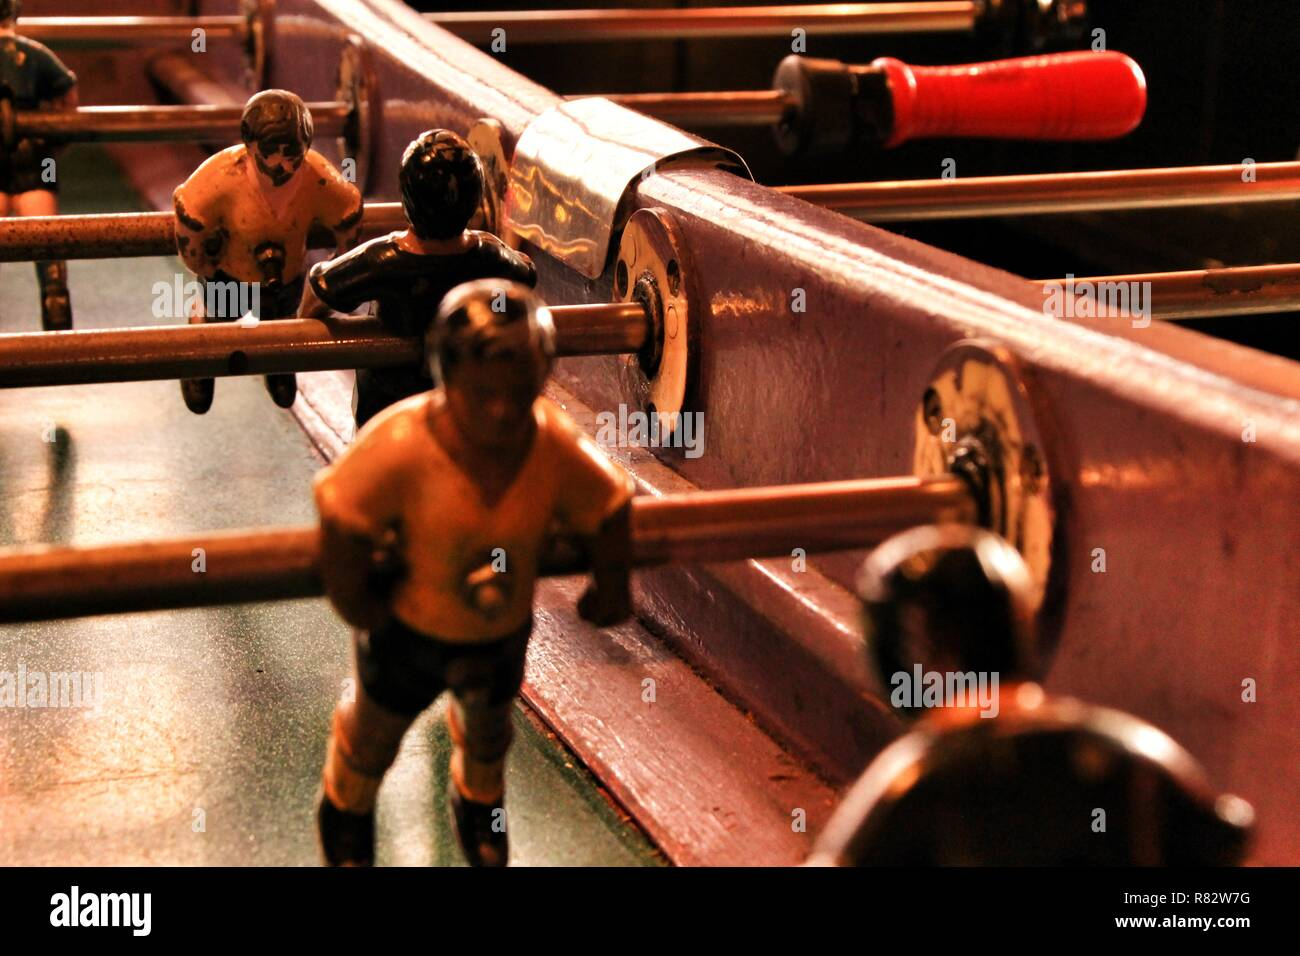 Old foosball table in a bar in Spain - Stock Image